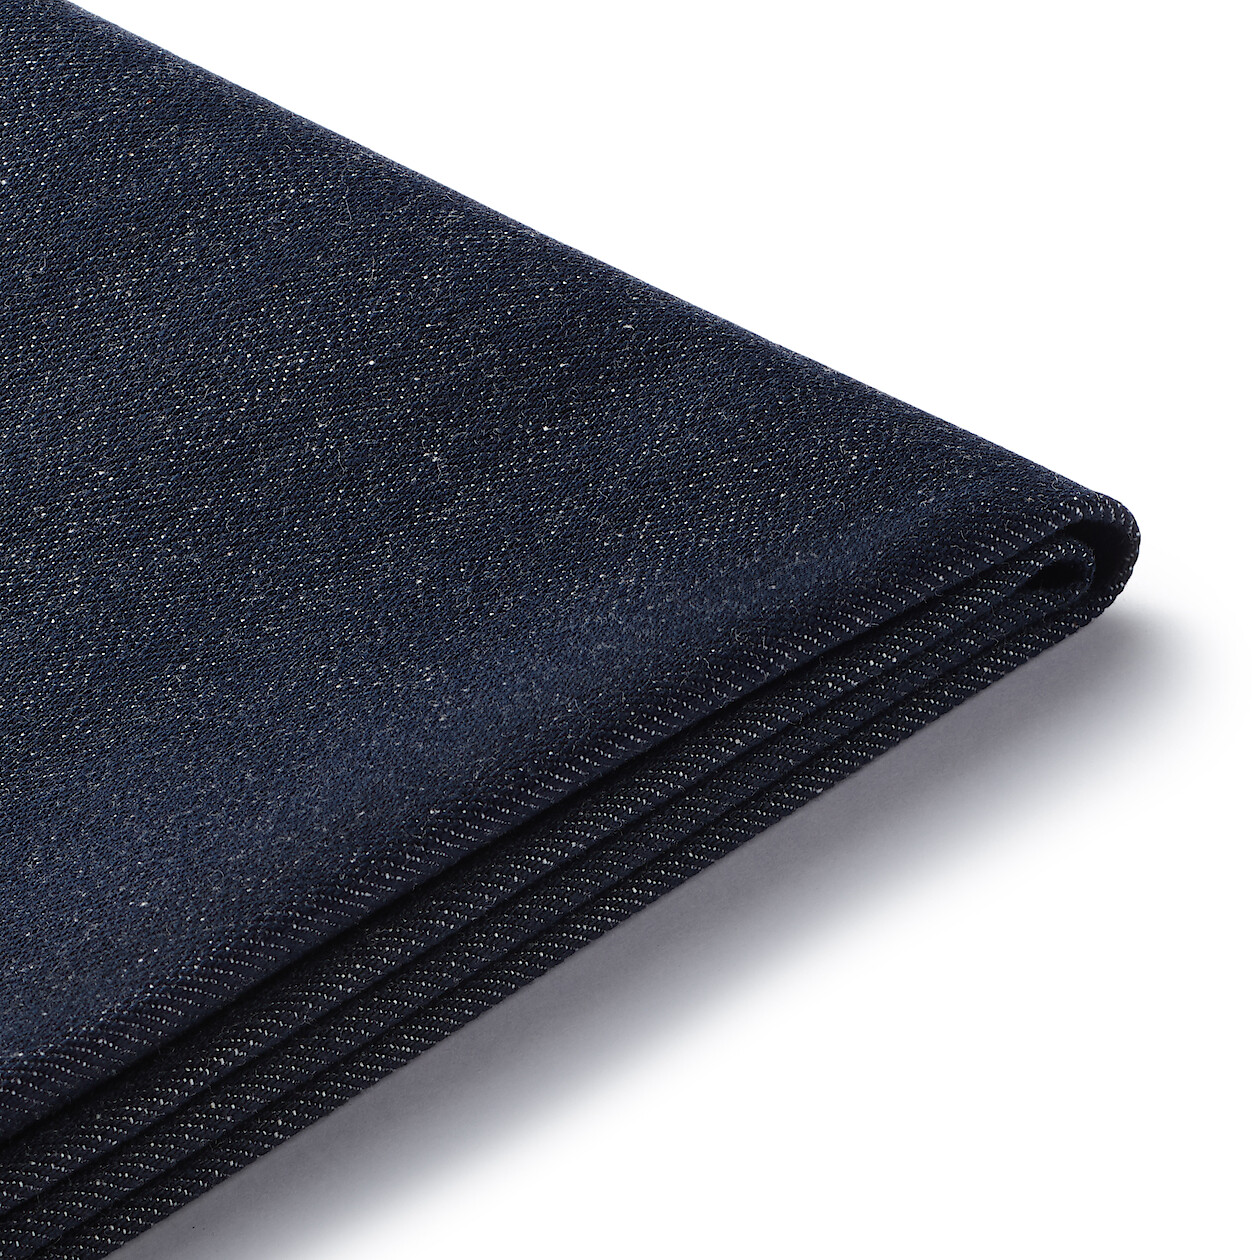 COTTON DENIM COVER FOR LD BENCH 2 / NAVY